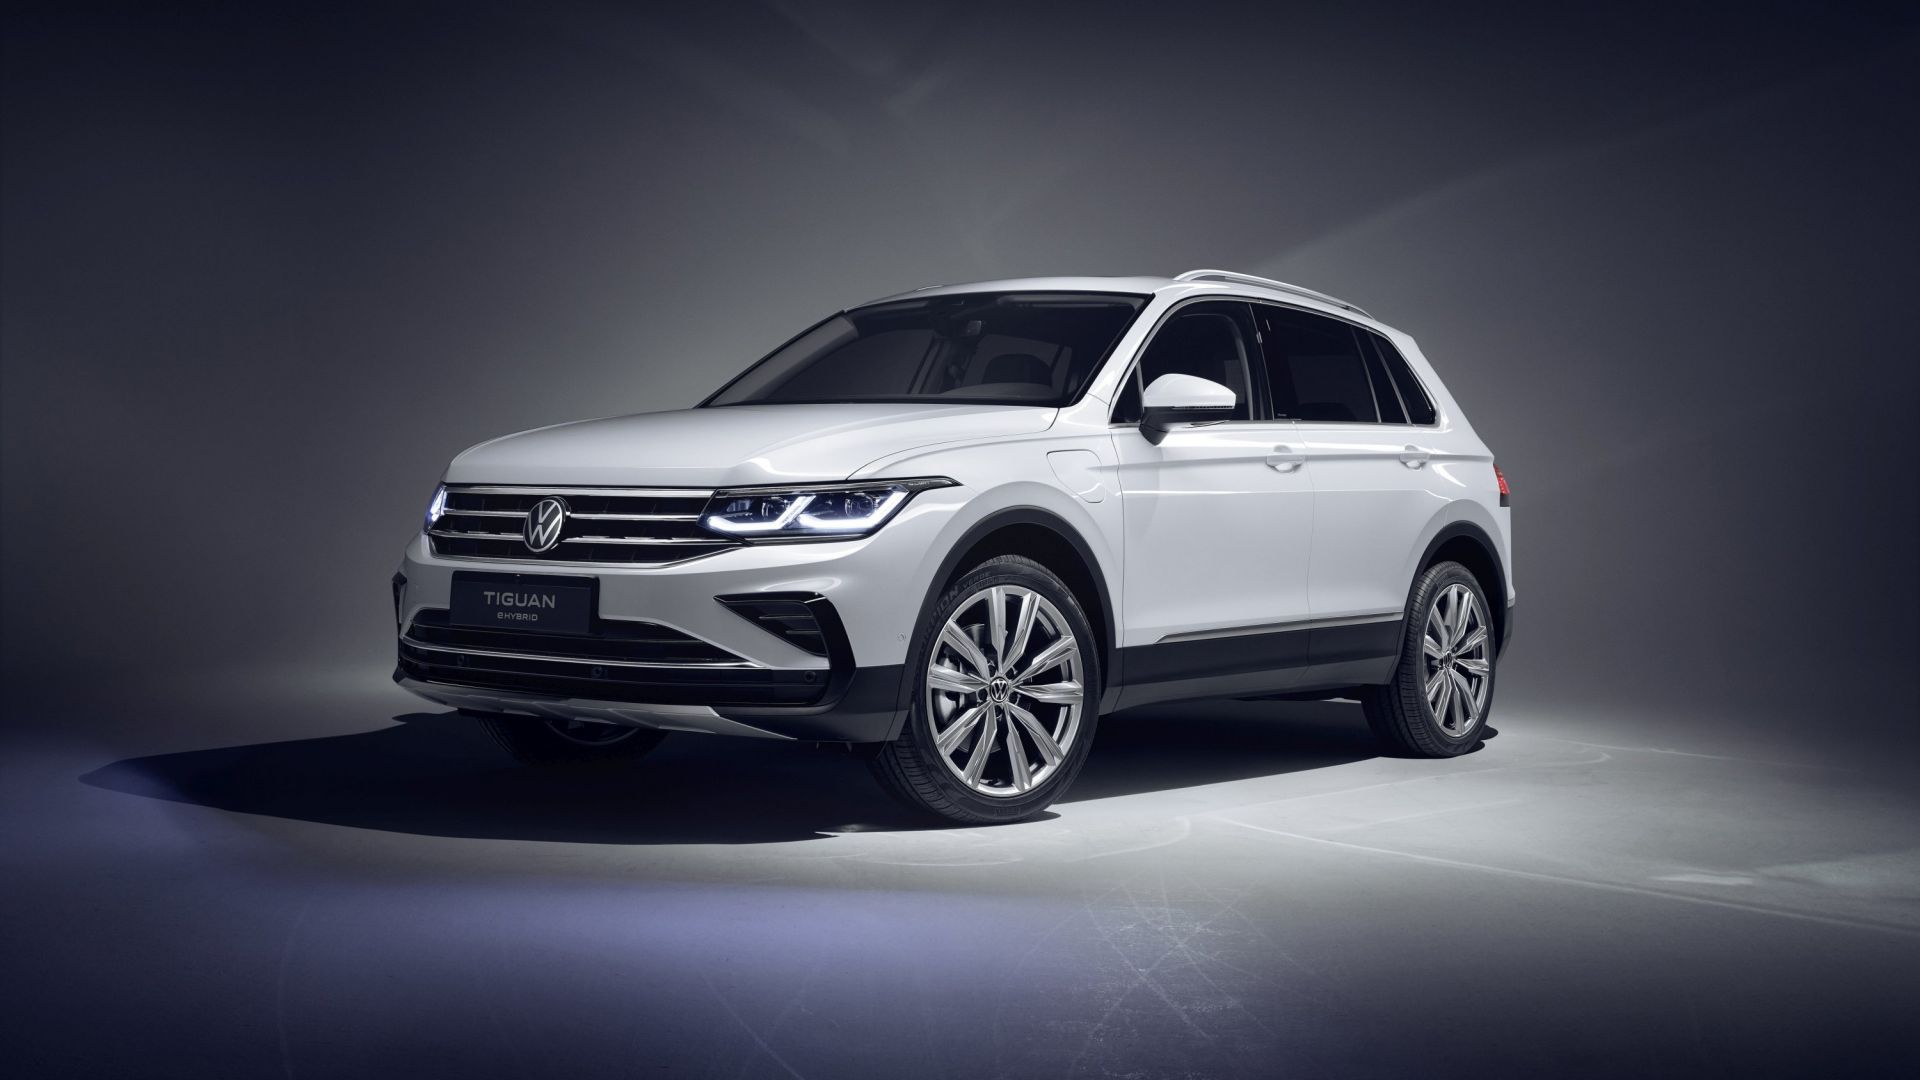 ecco volkswagen tiguan 2021 video specifiche tecniche